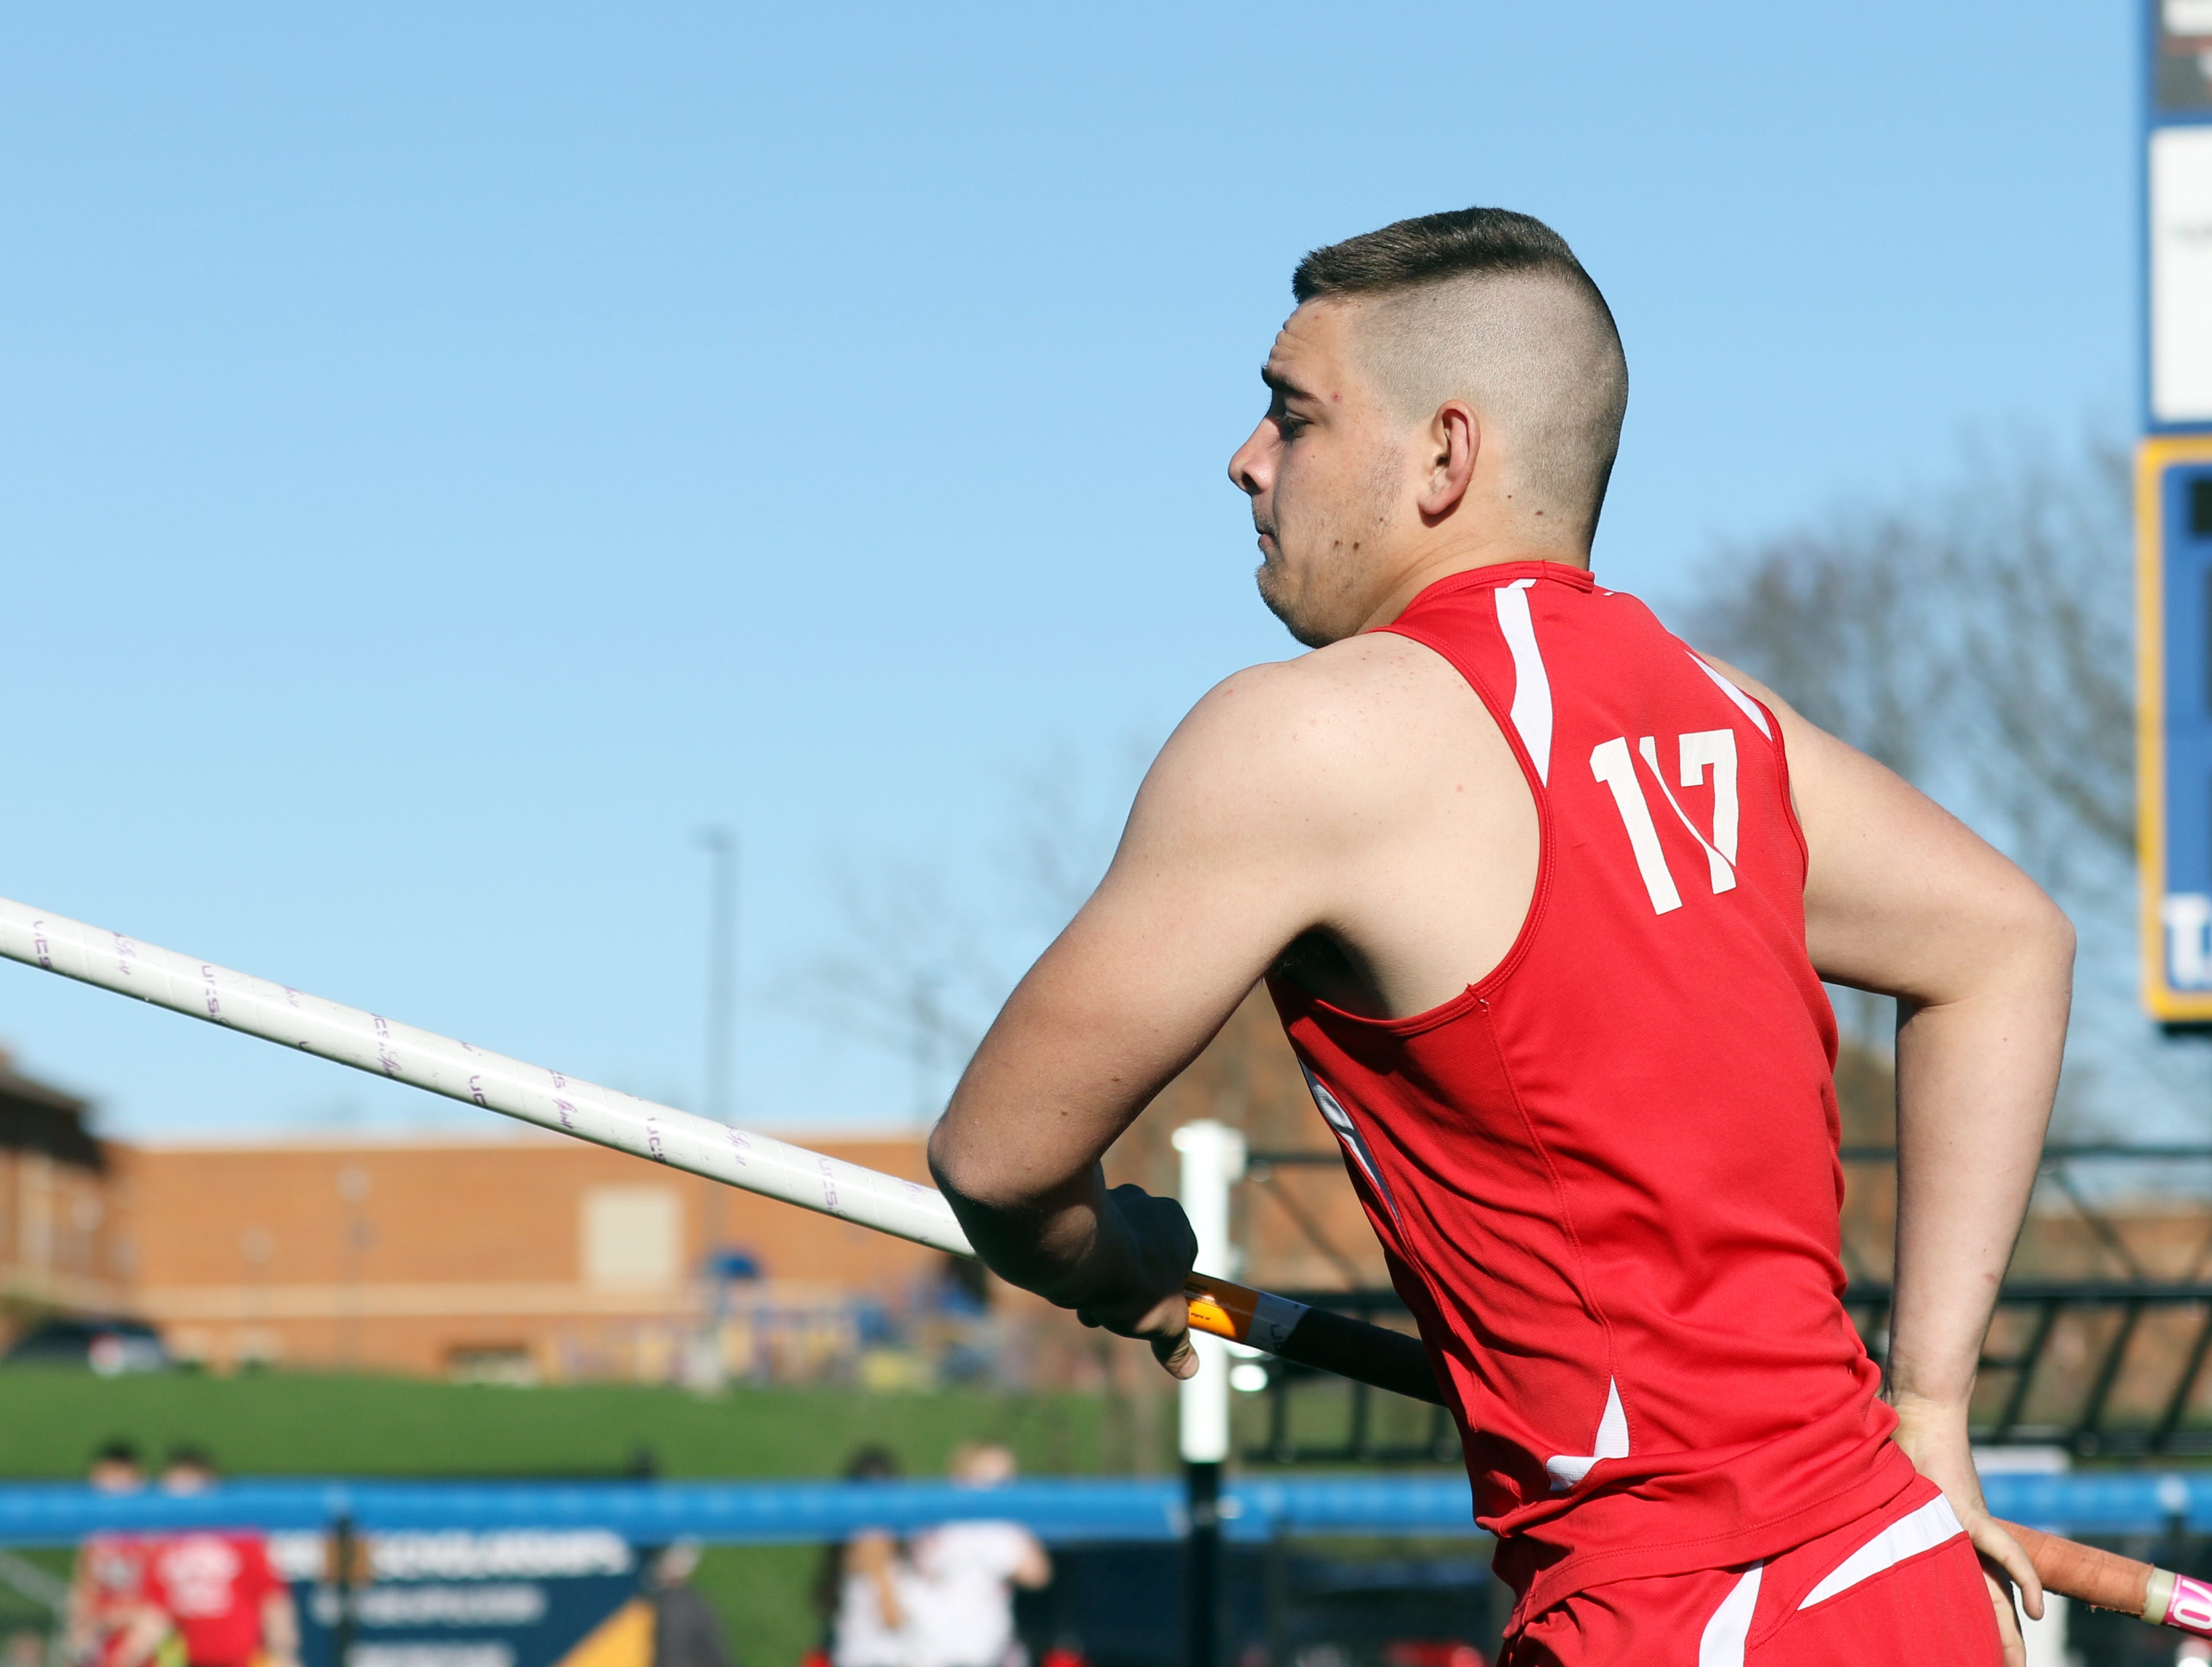 Sheridan's Jared Frame competes in the pole vault during Tuesday's tri-meet between Sheridan, New Lexington and host Maysville.